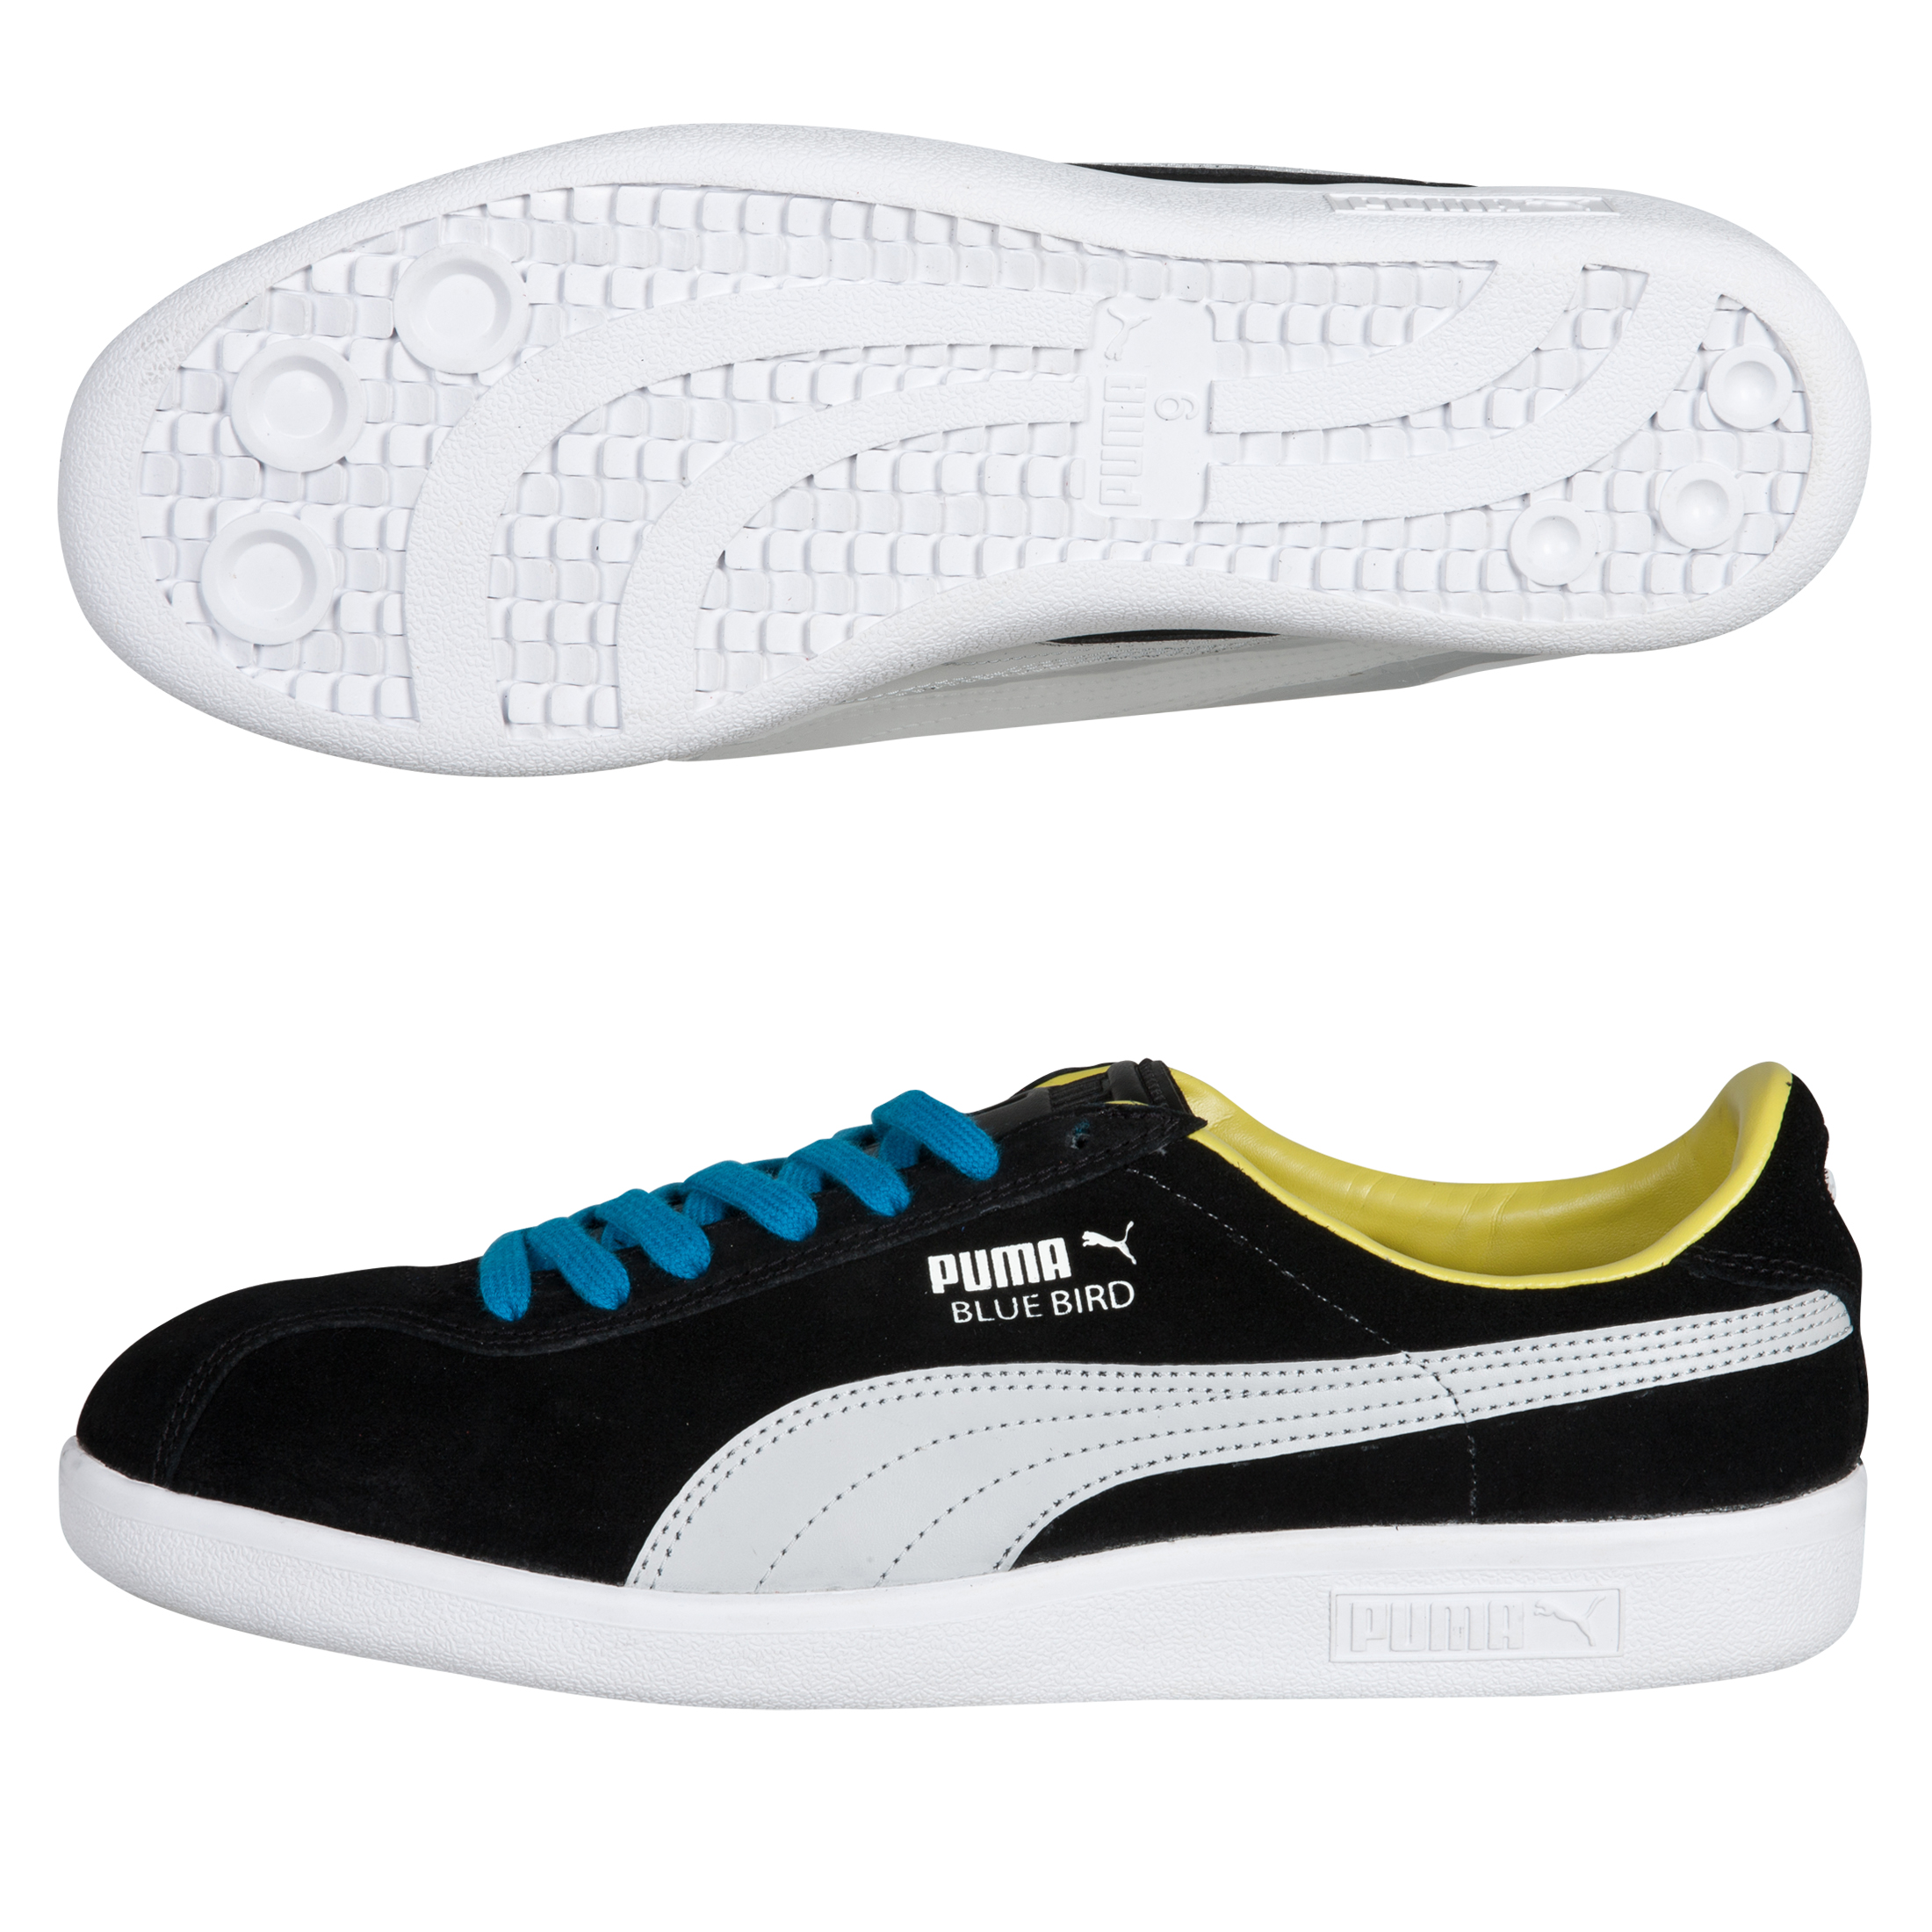 Puma Bluebird - Black/Wind Chime Gray/White